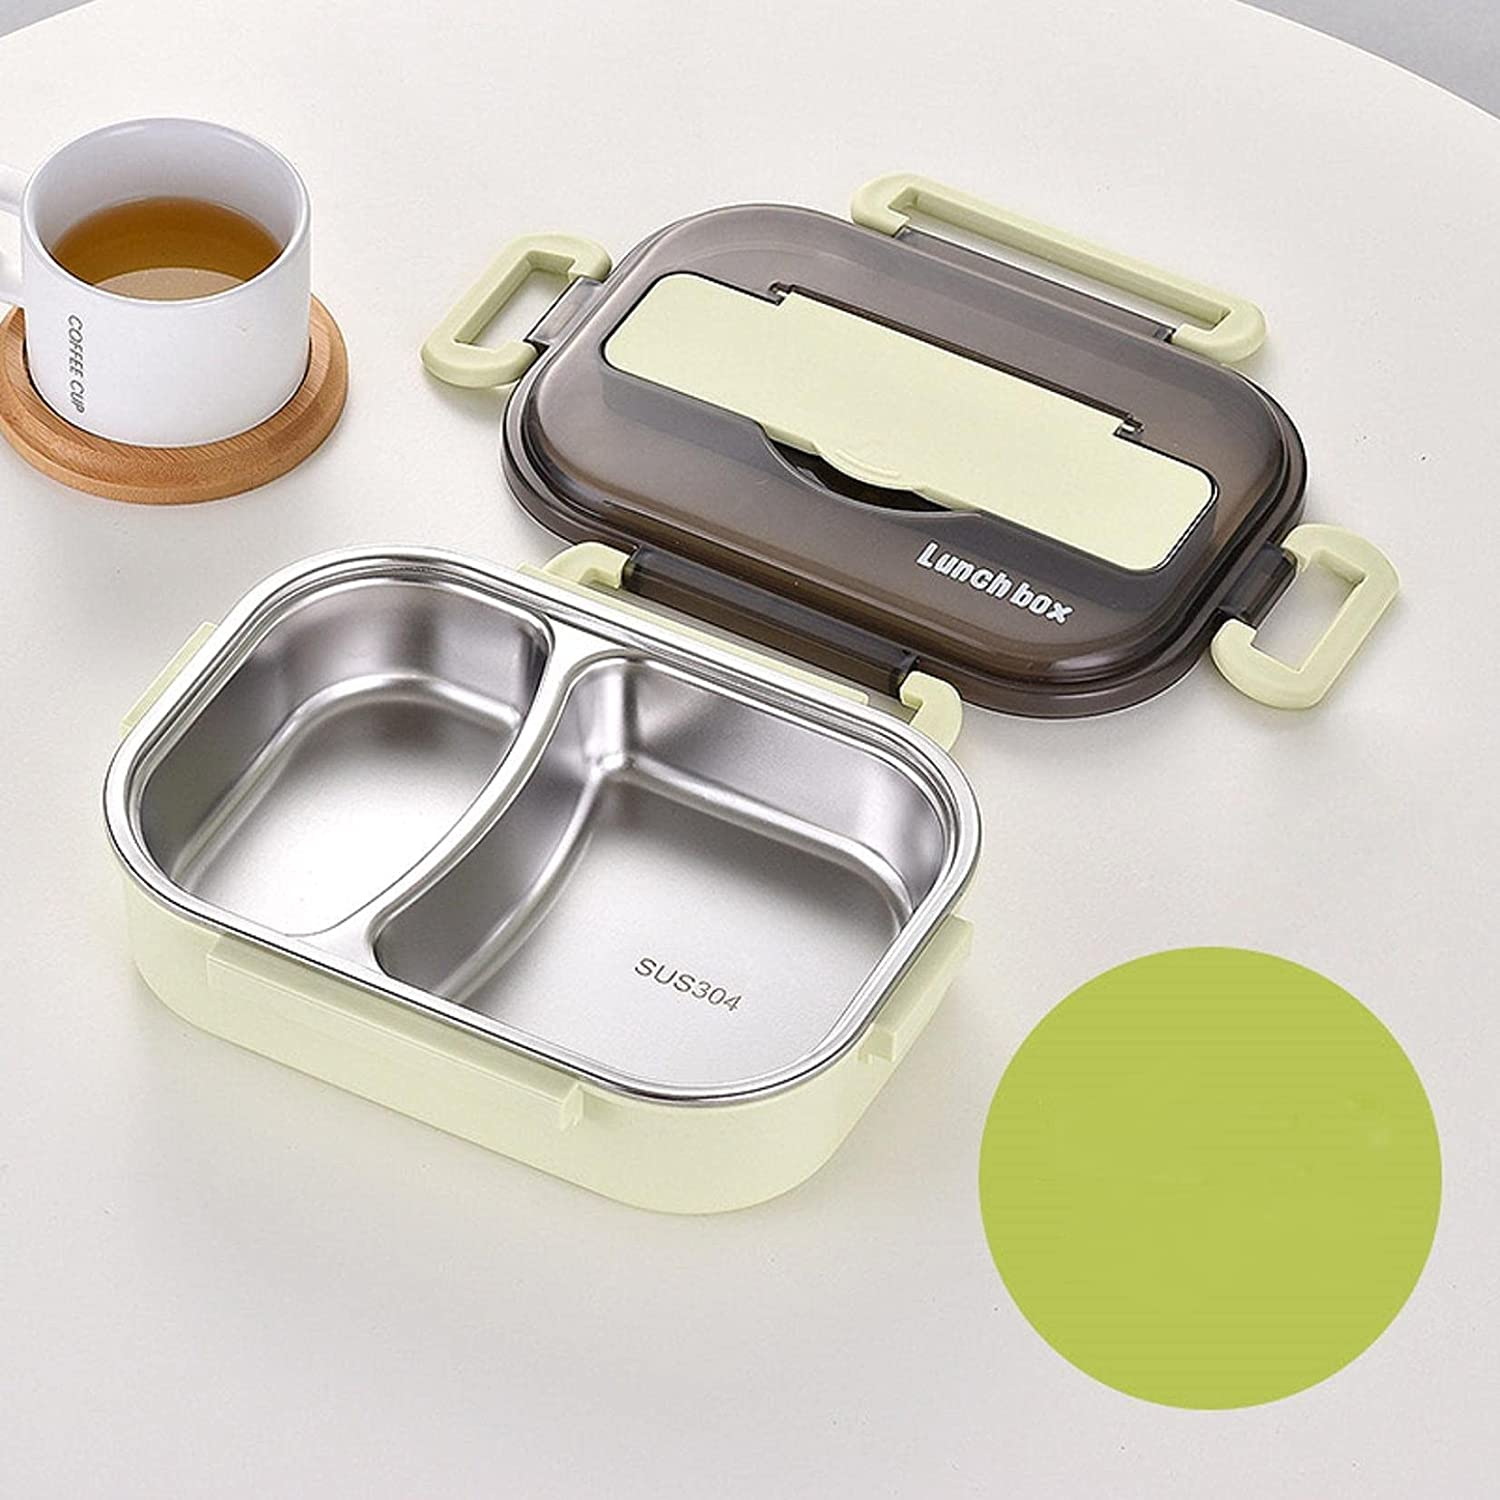 OLOPE Lunch Box,Bento Boxes for Student, Thermal Insulation Bento Lunch Box , High-Grade Stainless Steel Liner, Lunch Containers for Kids Lunch Box Stainless Steel Utensil Set (Lunch Box Green A)